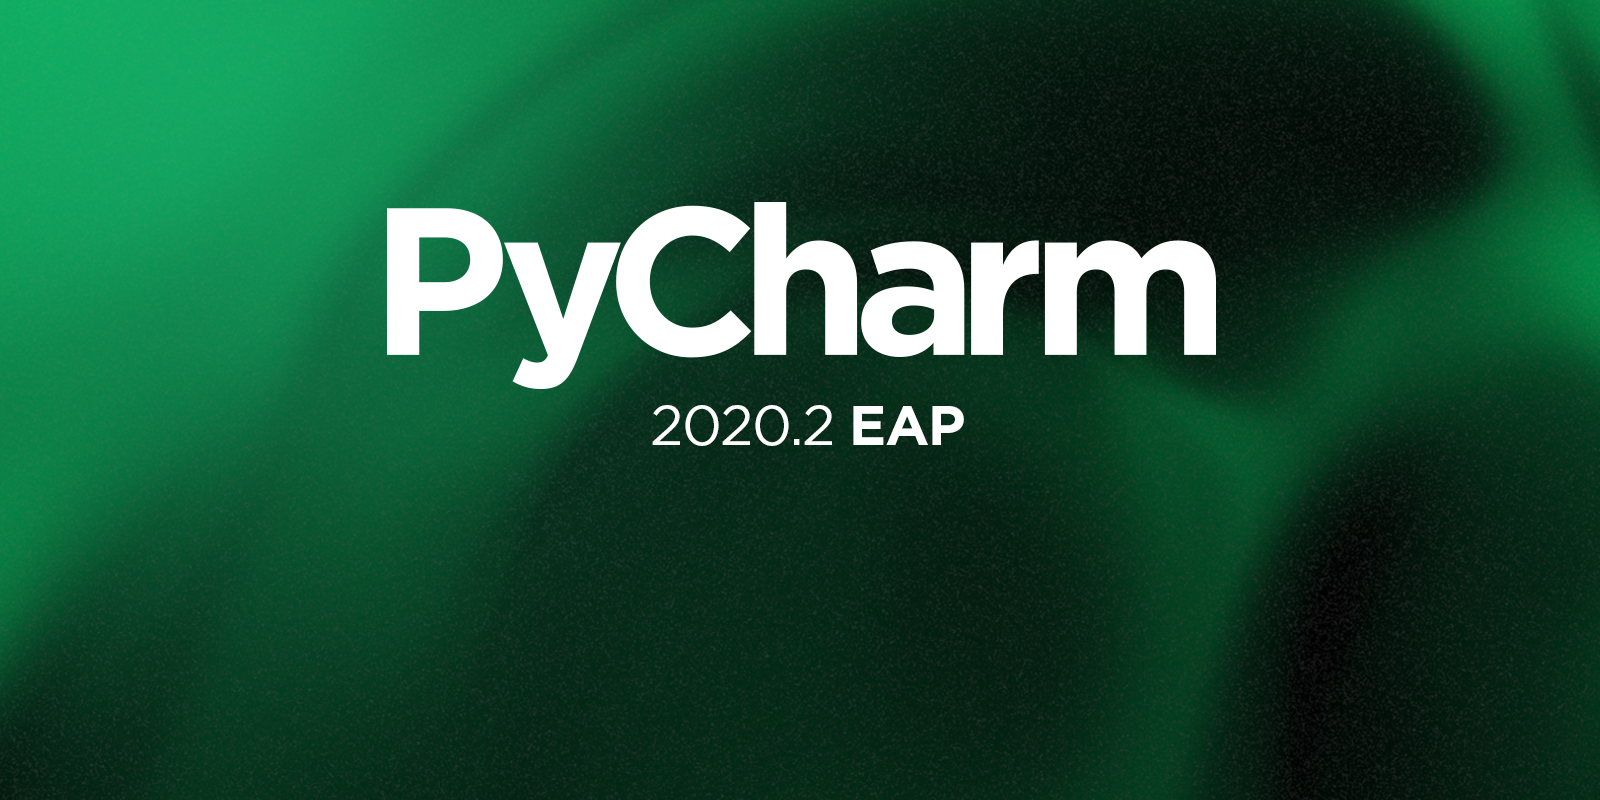 pycharm EAP program